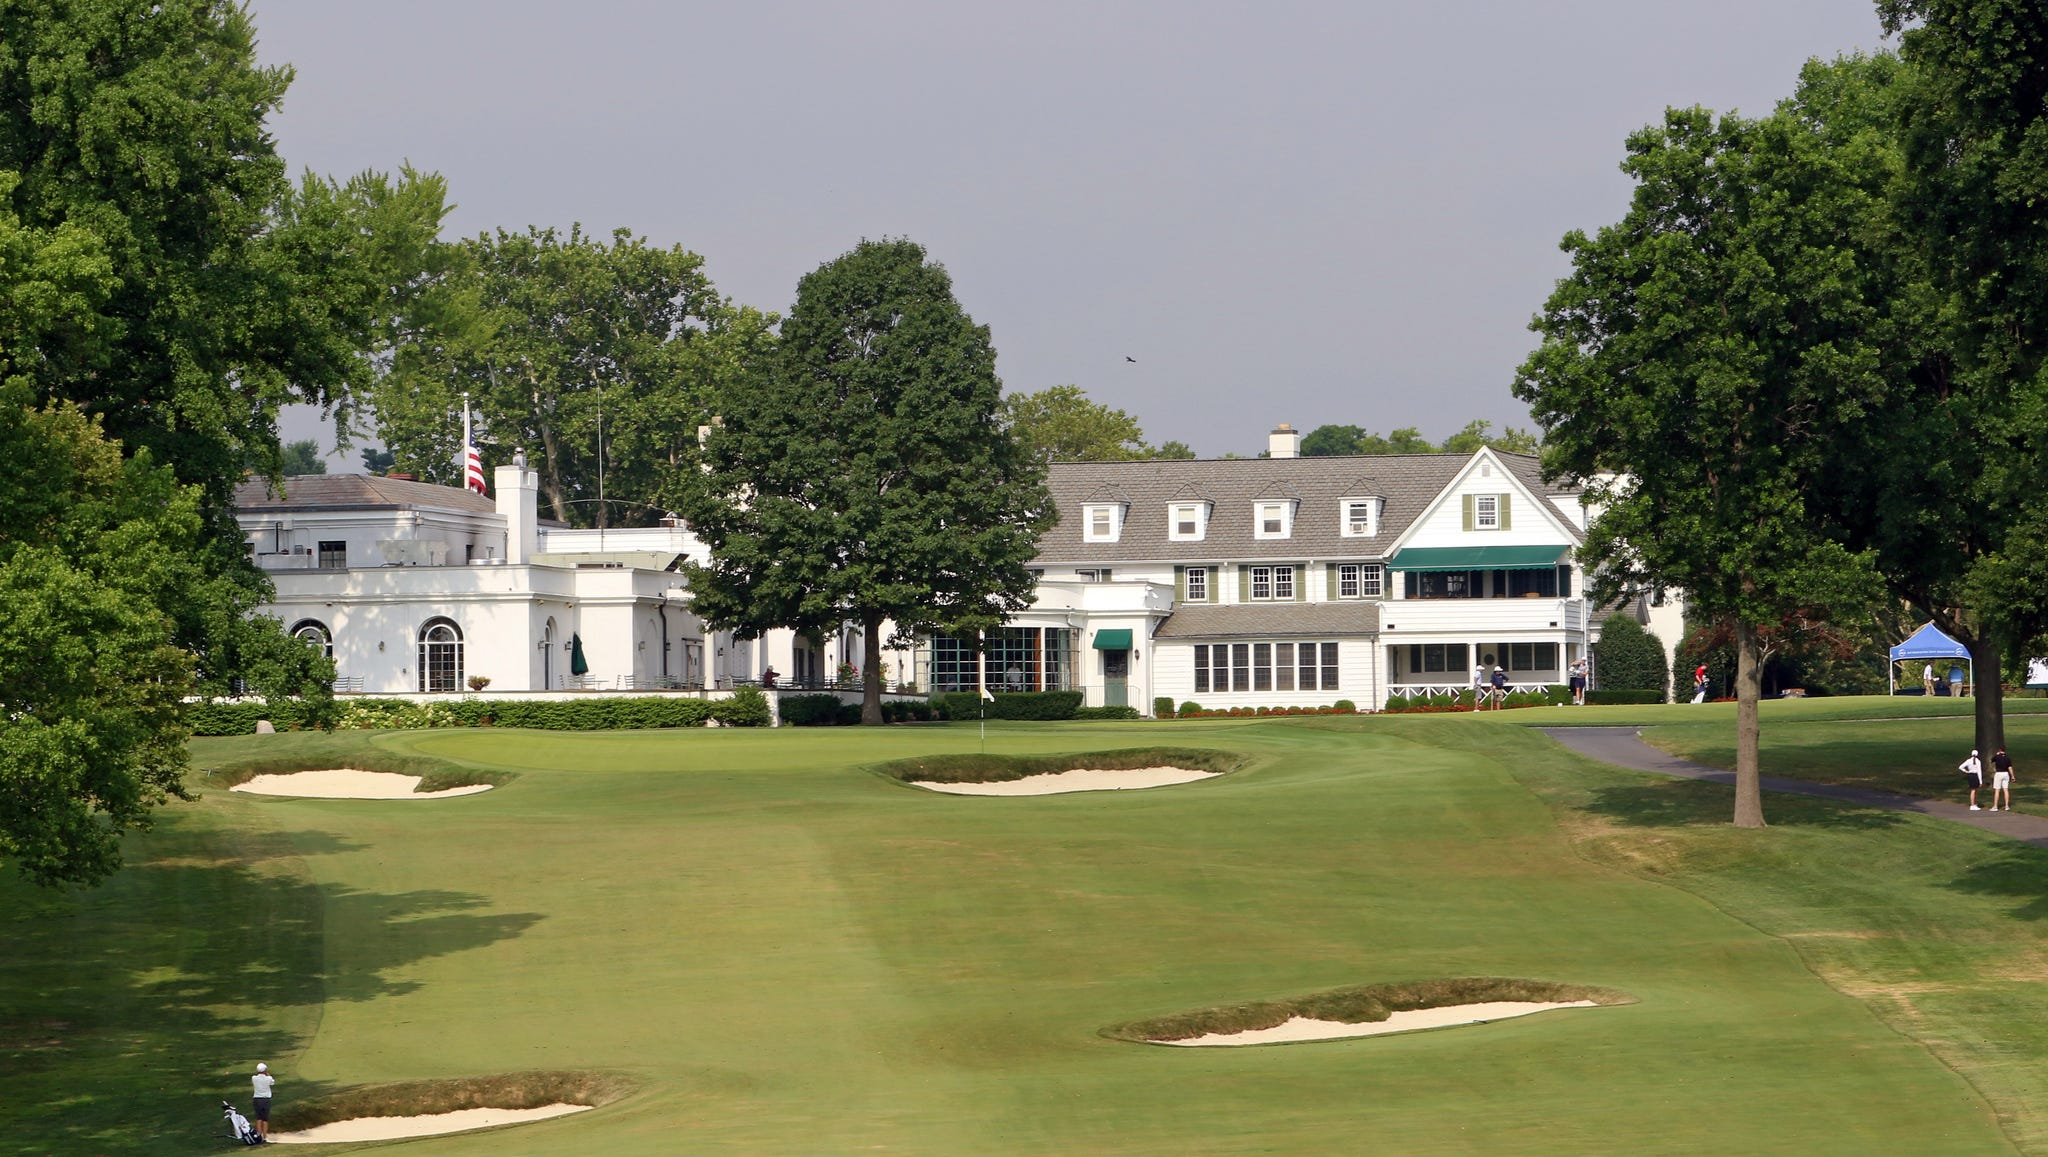 Fox News host Melissa Francis lashes out at Siwanoy Country Club